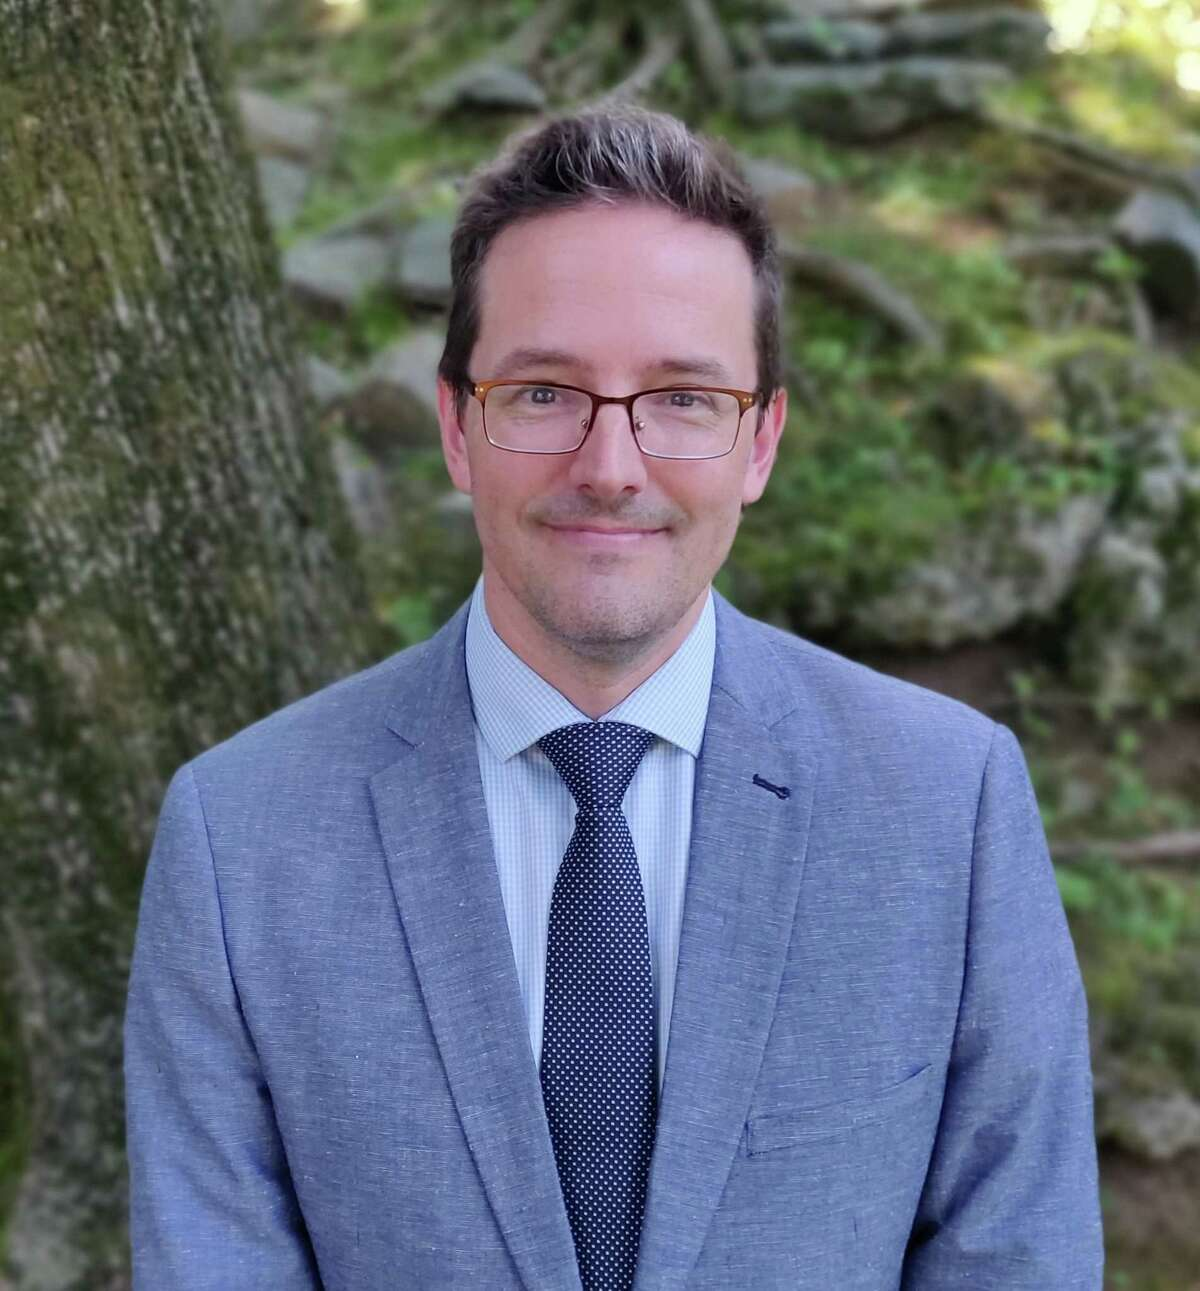 The Board of Directors of the Darien Nature Center has named Alex Domeyko as the center's new Executive Director.